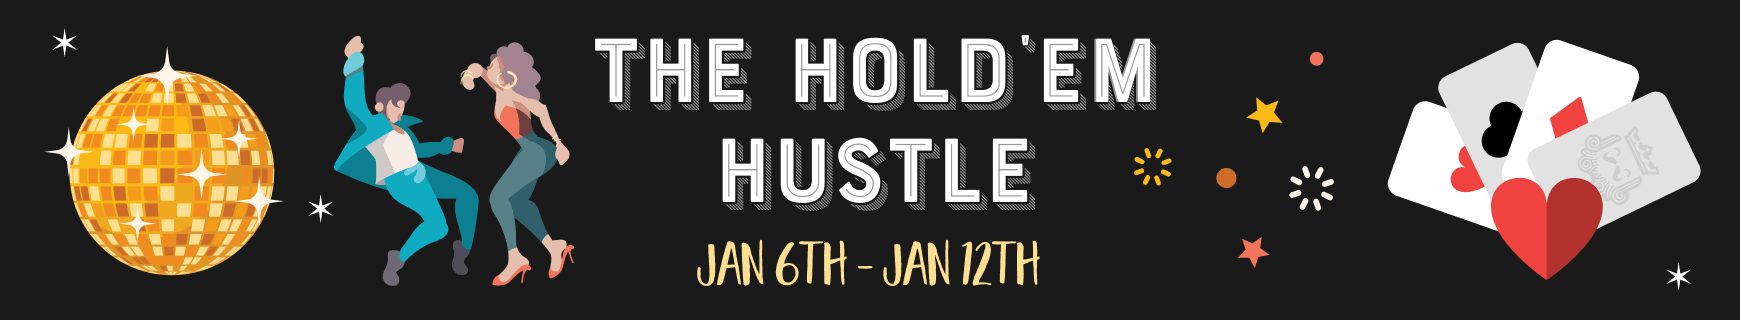 The hold'em hustle   dashboard %28870 x 160%29 2x